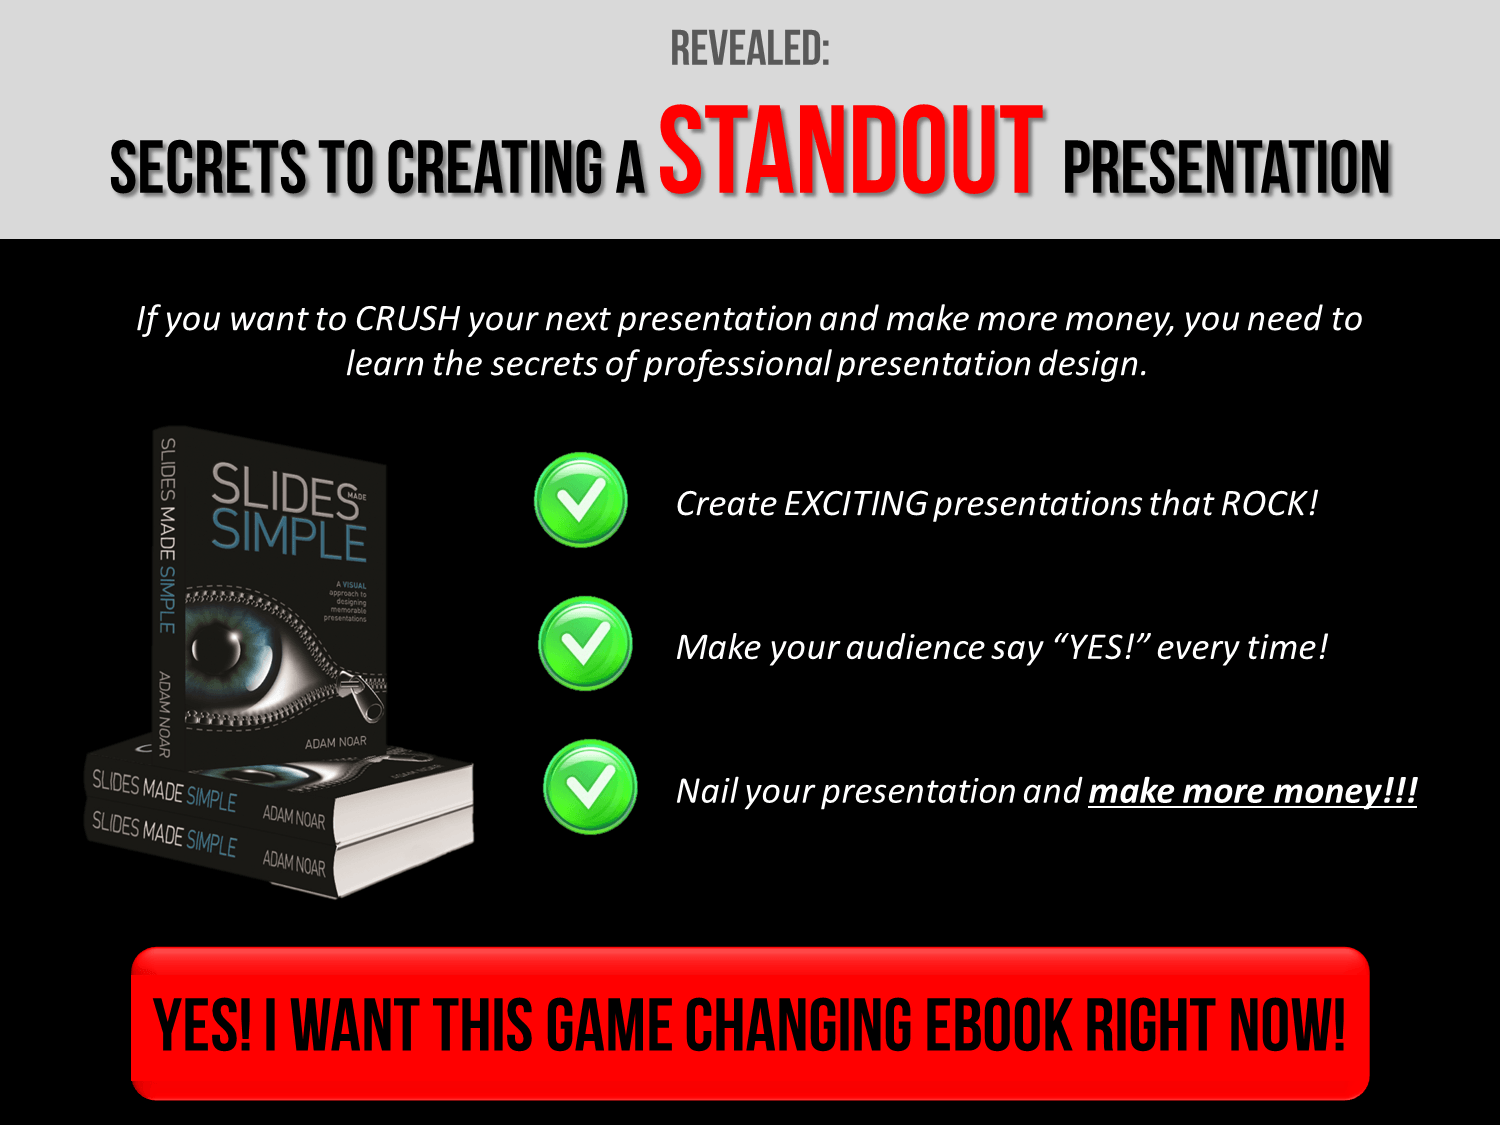 Revealed - Presentation Tips That Will Make You More Money